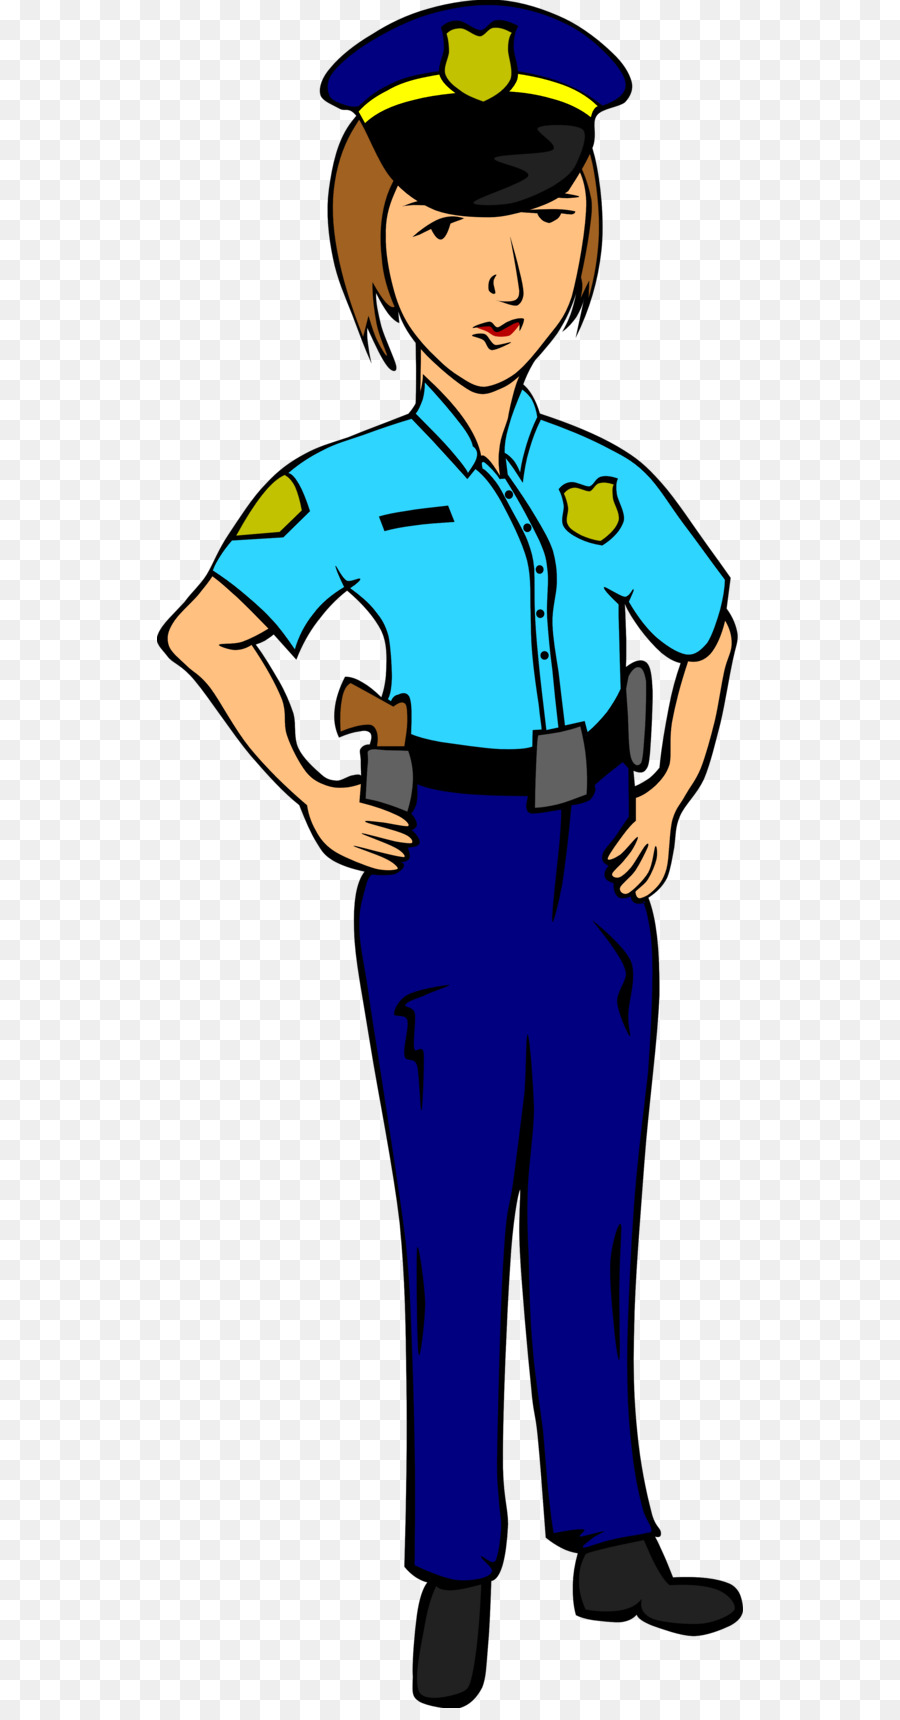 Clipart of police officer picture royalty free library Police Officer Cartoon clipart - Police, Boy, Uniform, transparent ... picture royalty free library